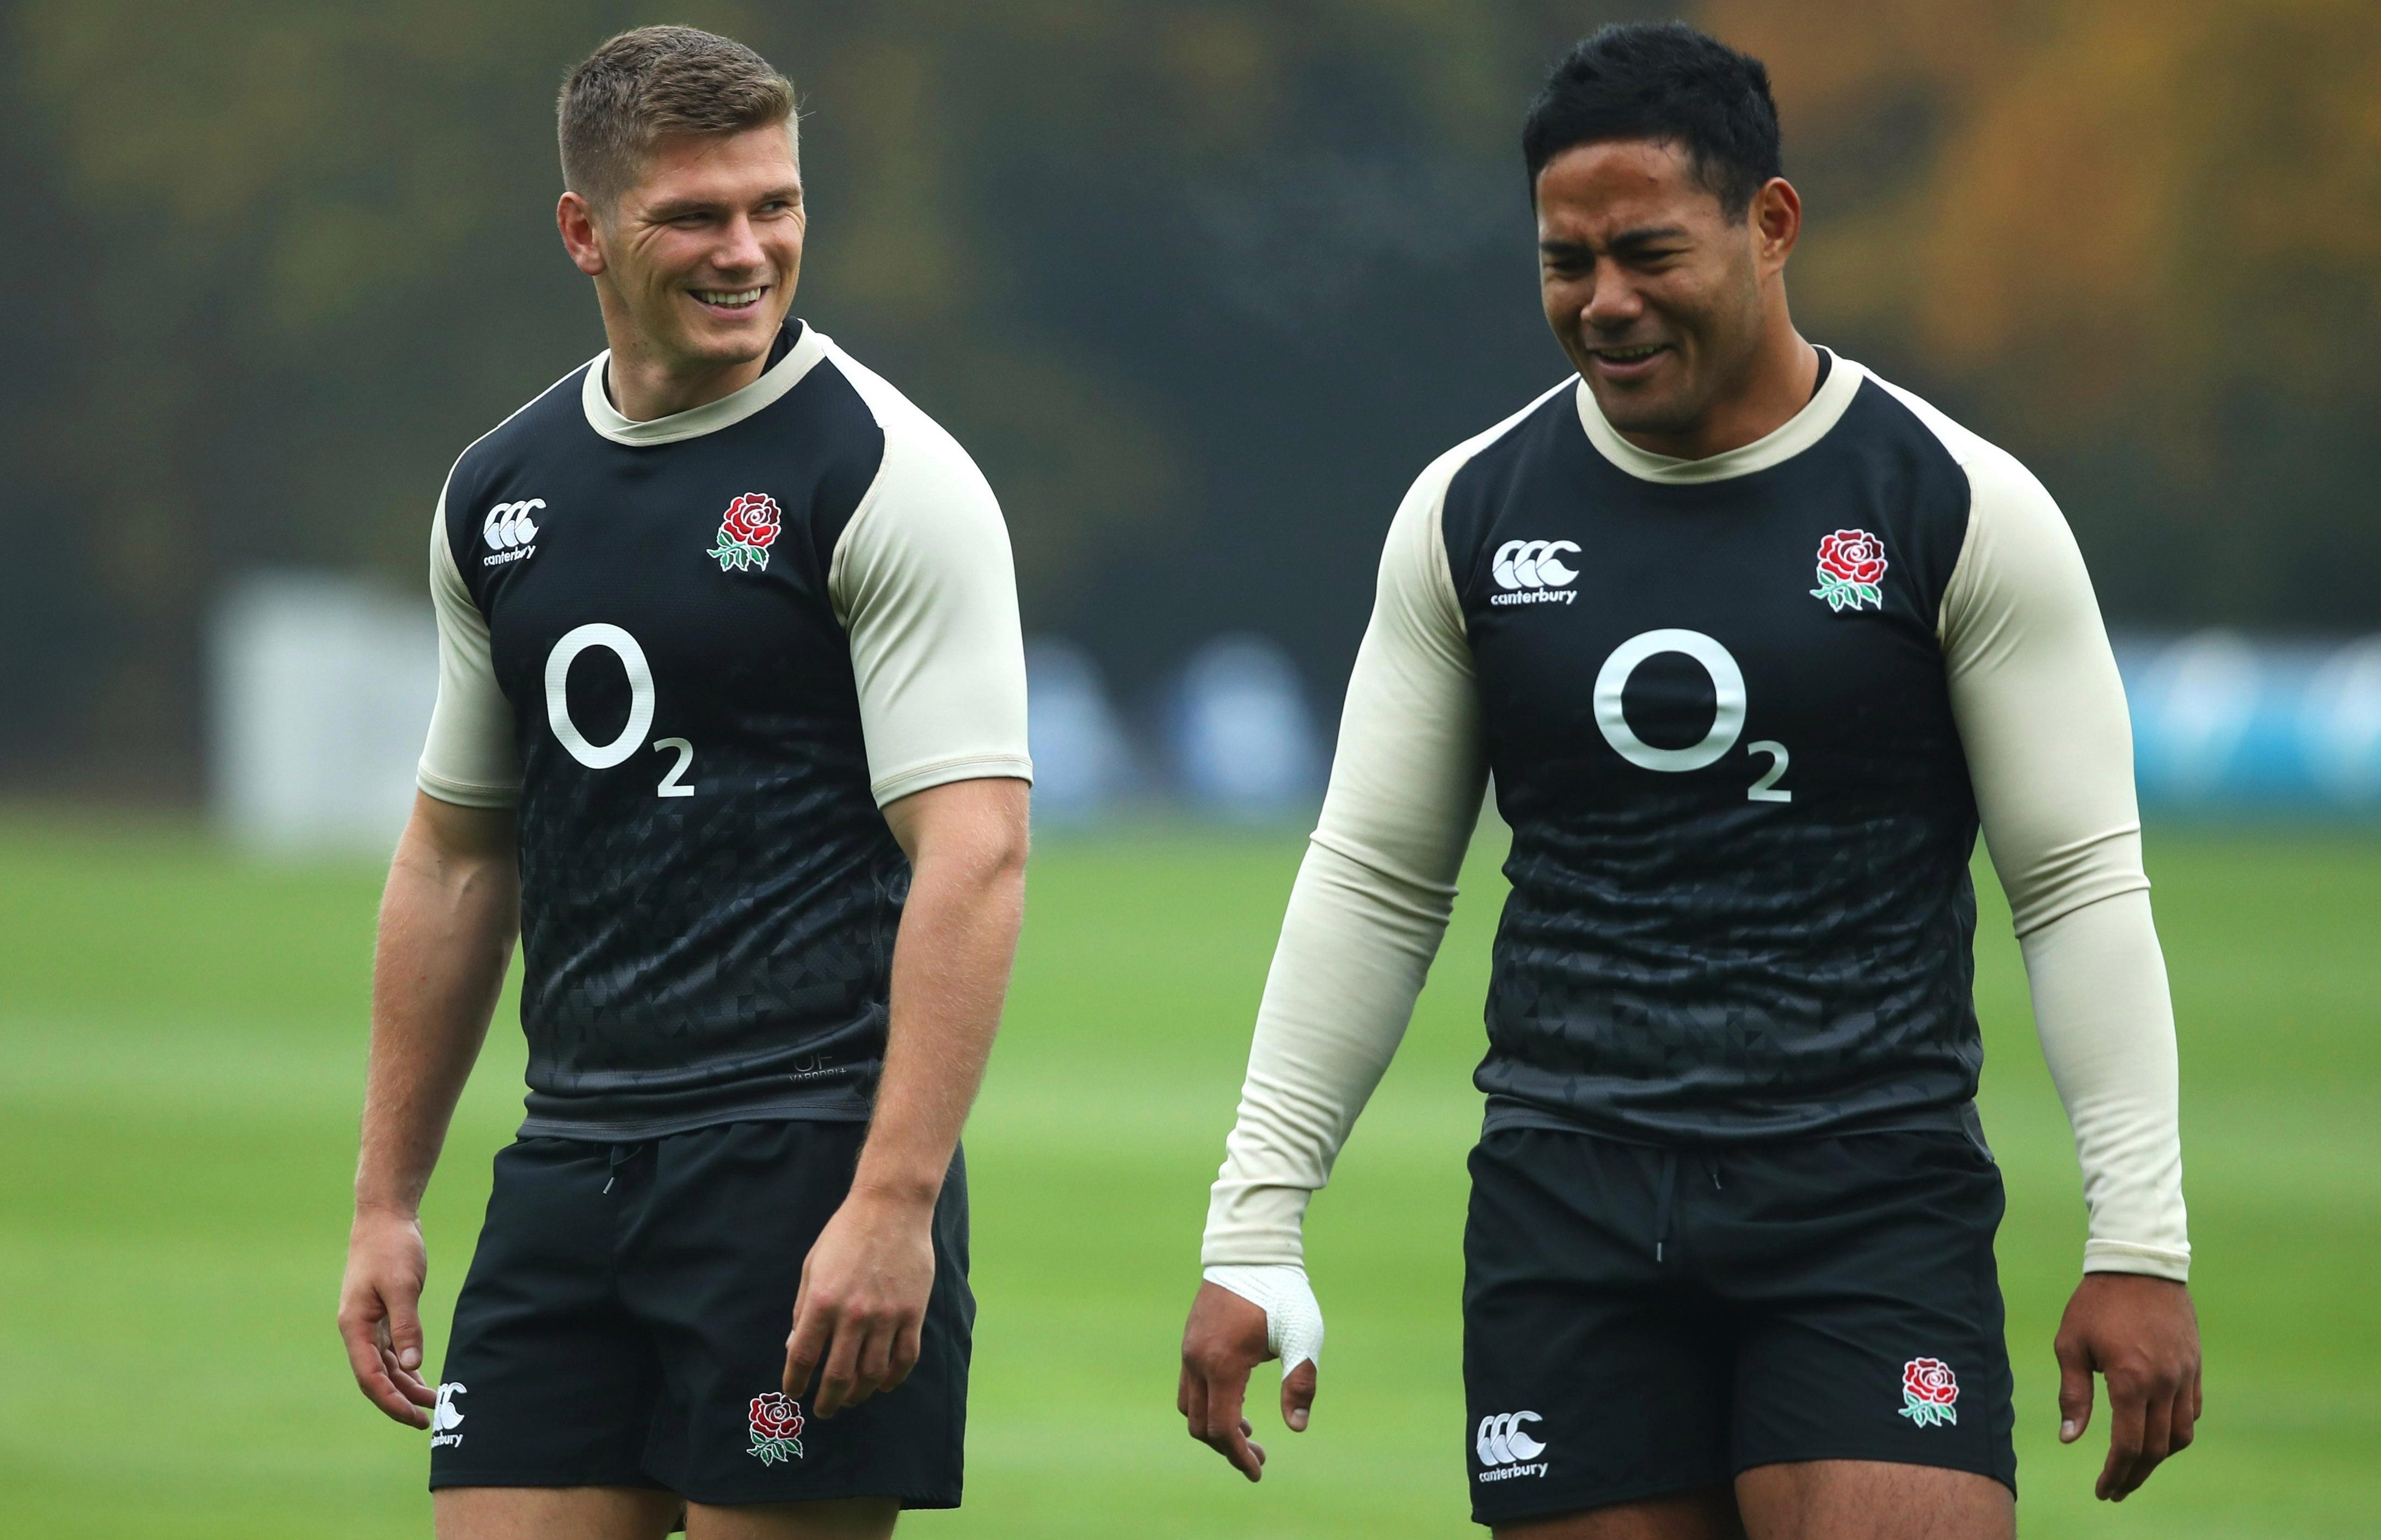 The All Blacks might want to know who these two are. . .